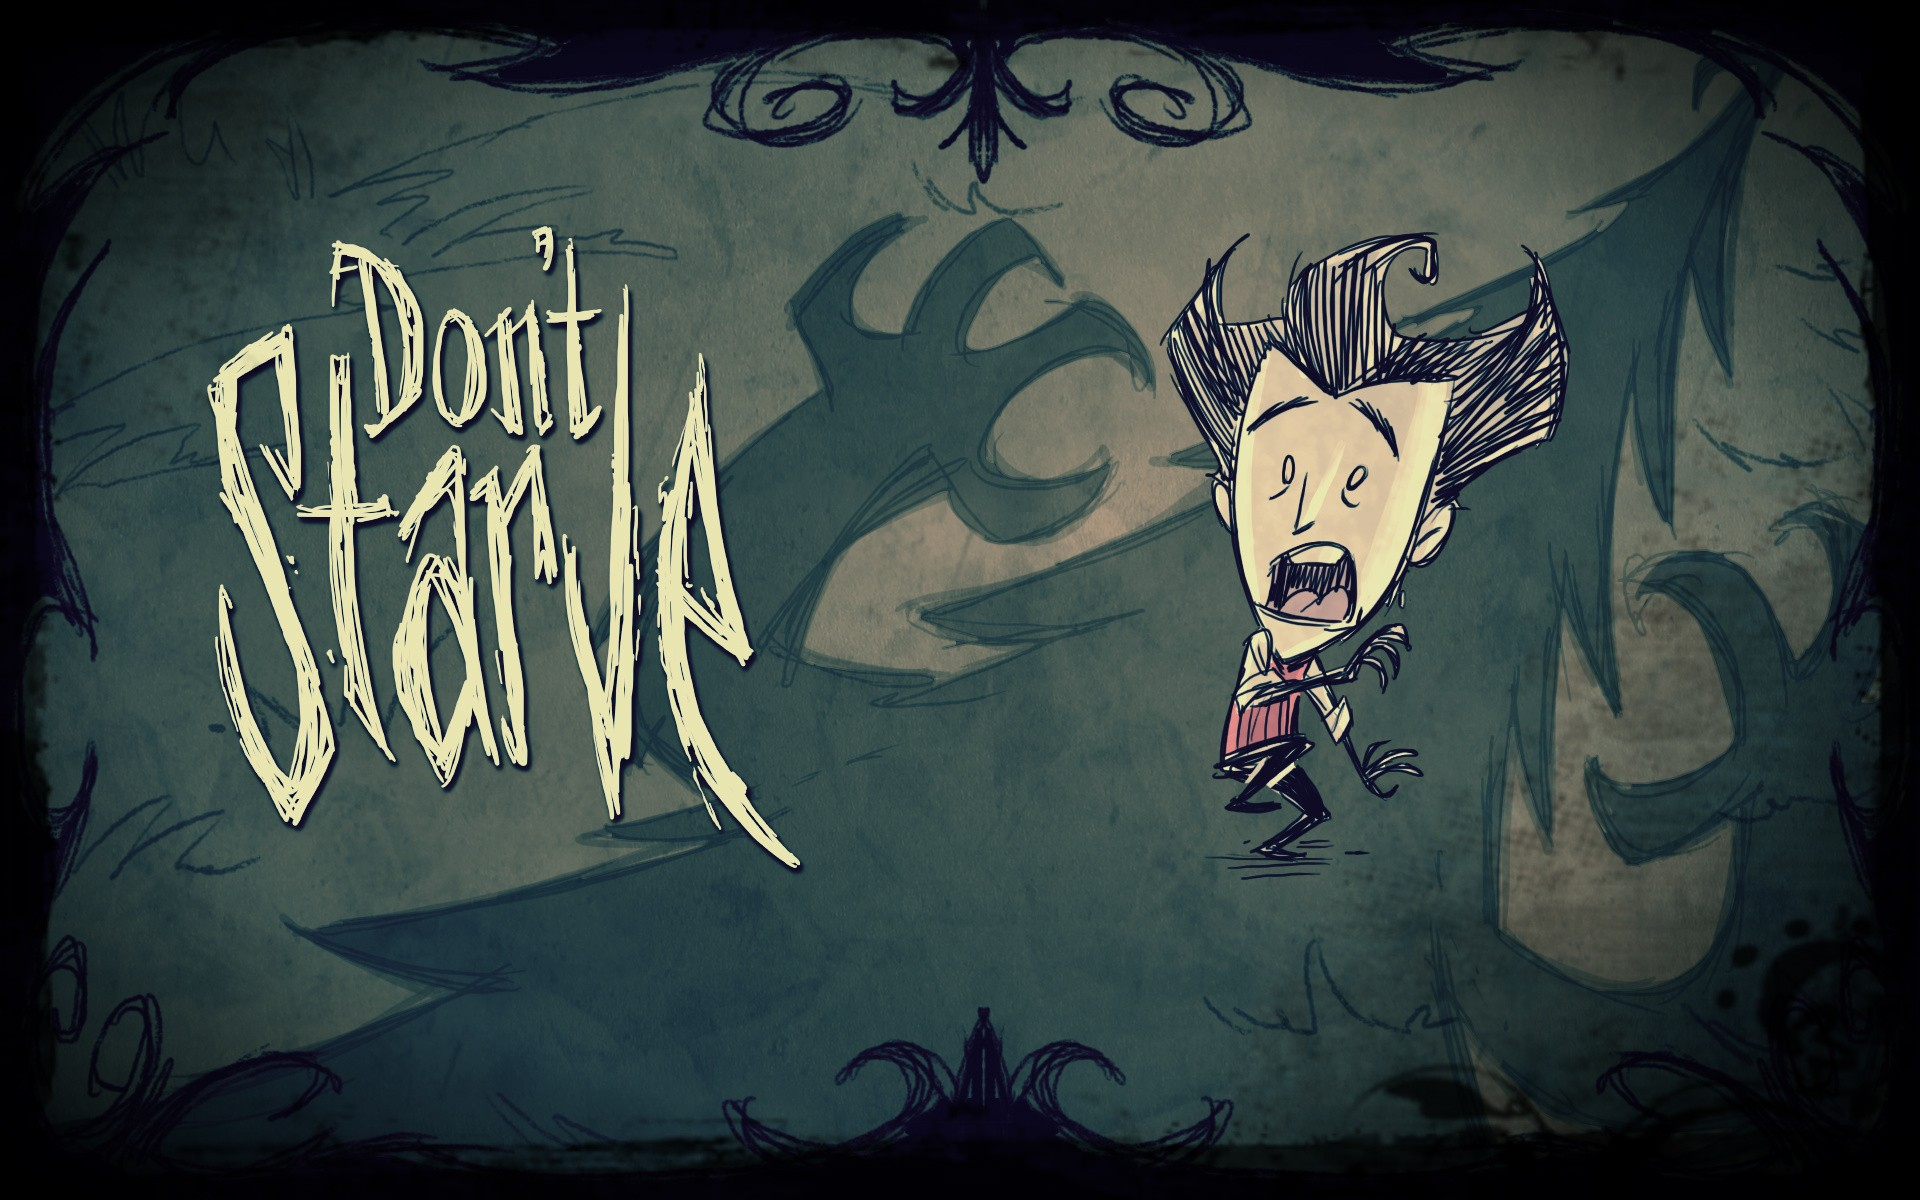 background - Don't Starve Together se blíží ke zdárnému konci!